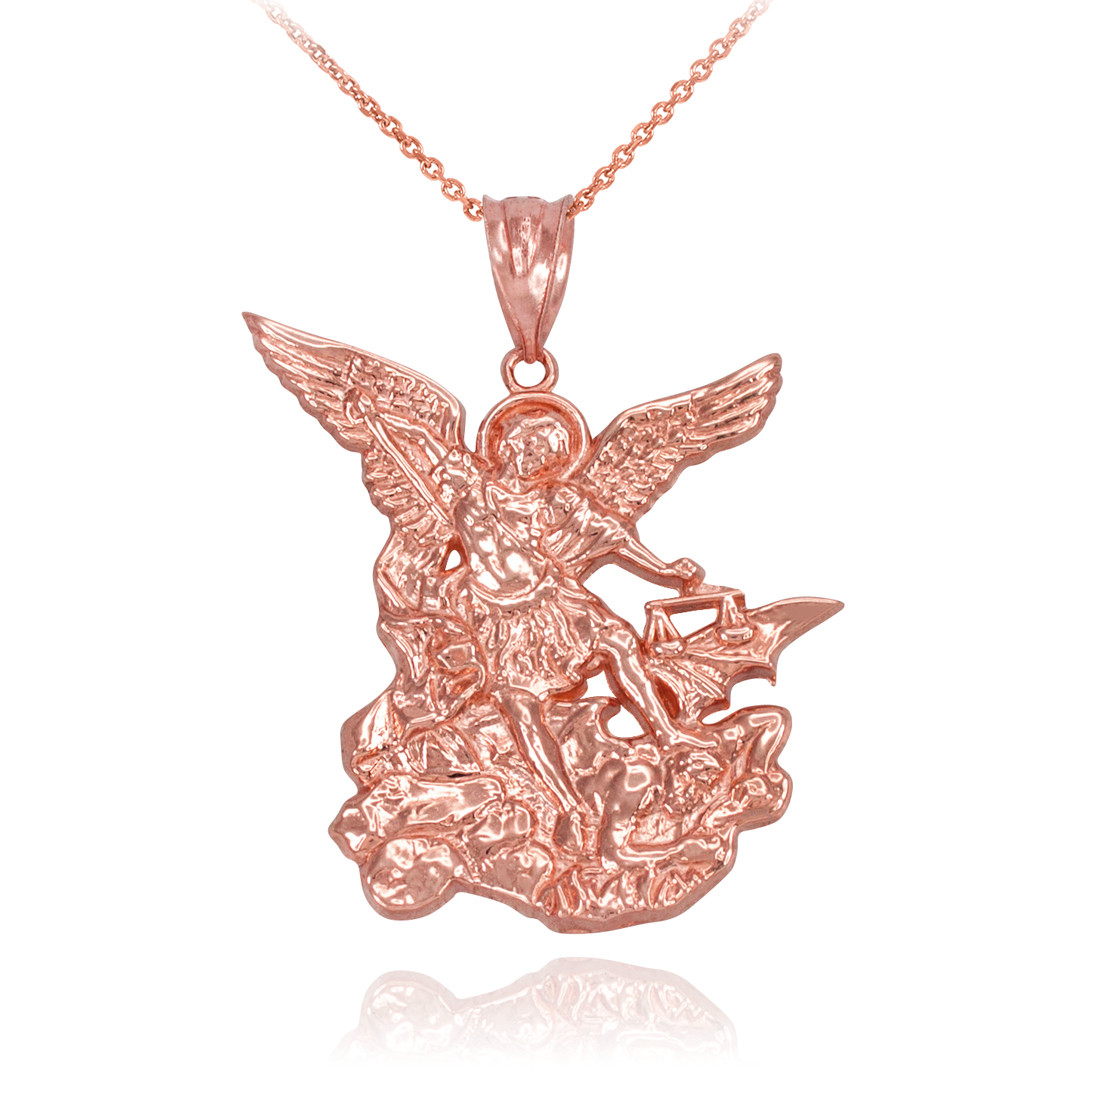 Rose gold st michael pendant necklace rose gold st michael necklace aloadofball Choice Image